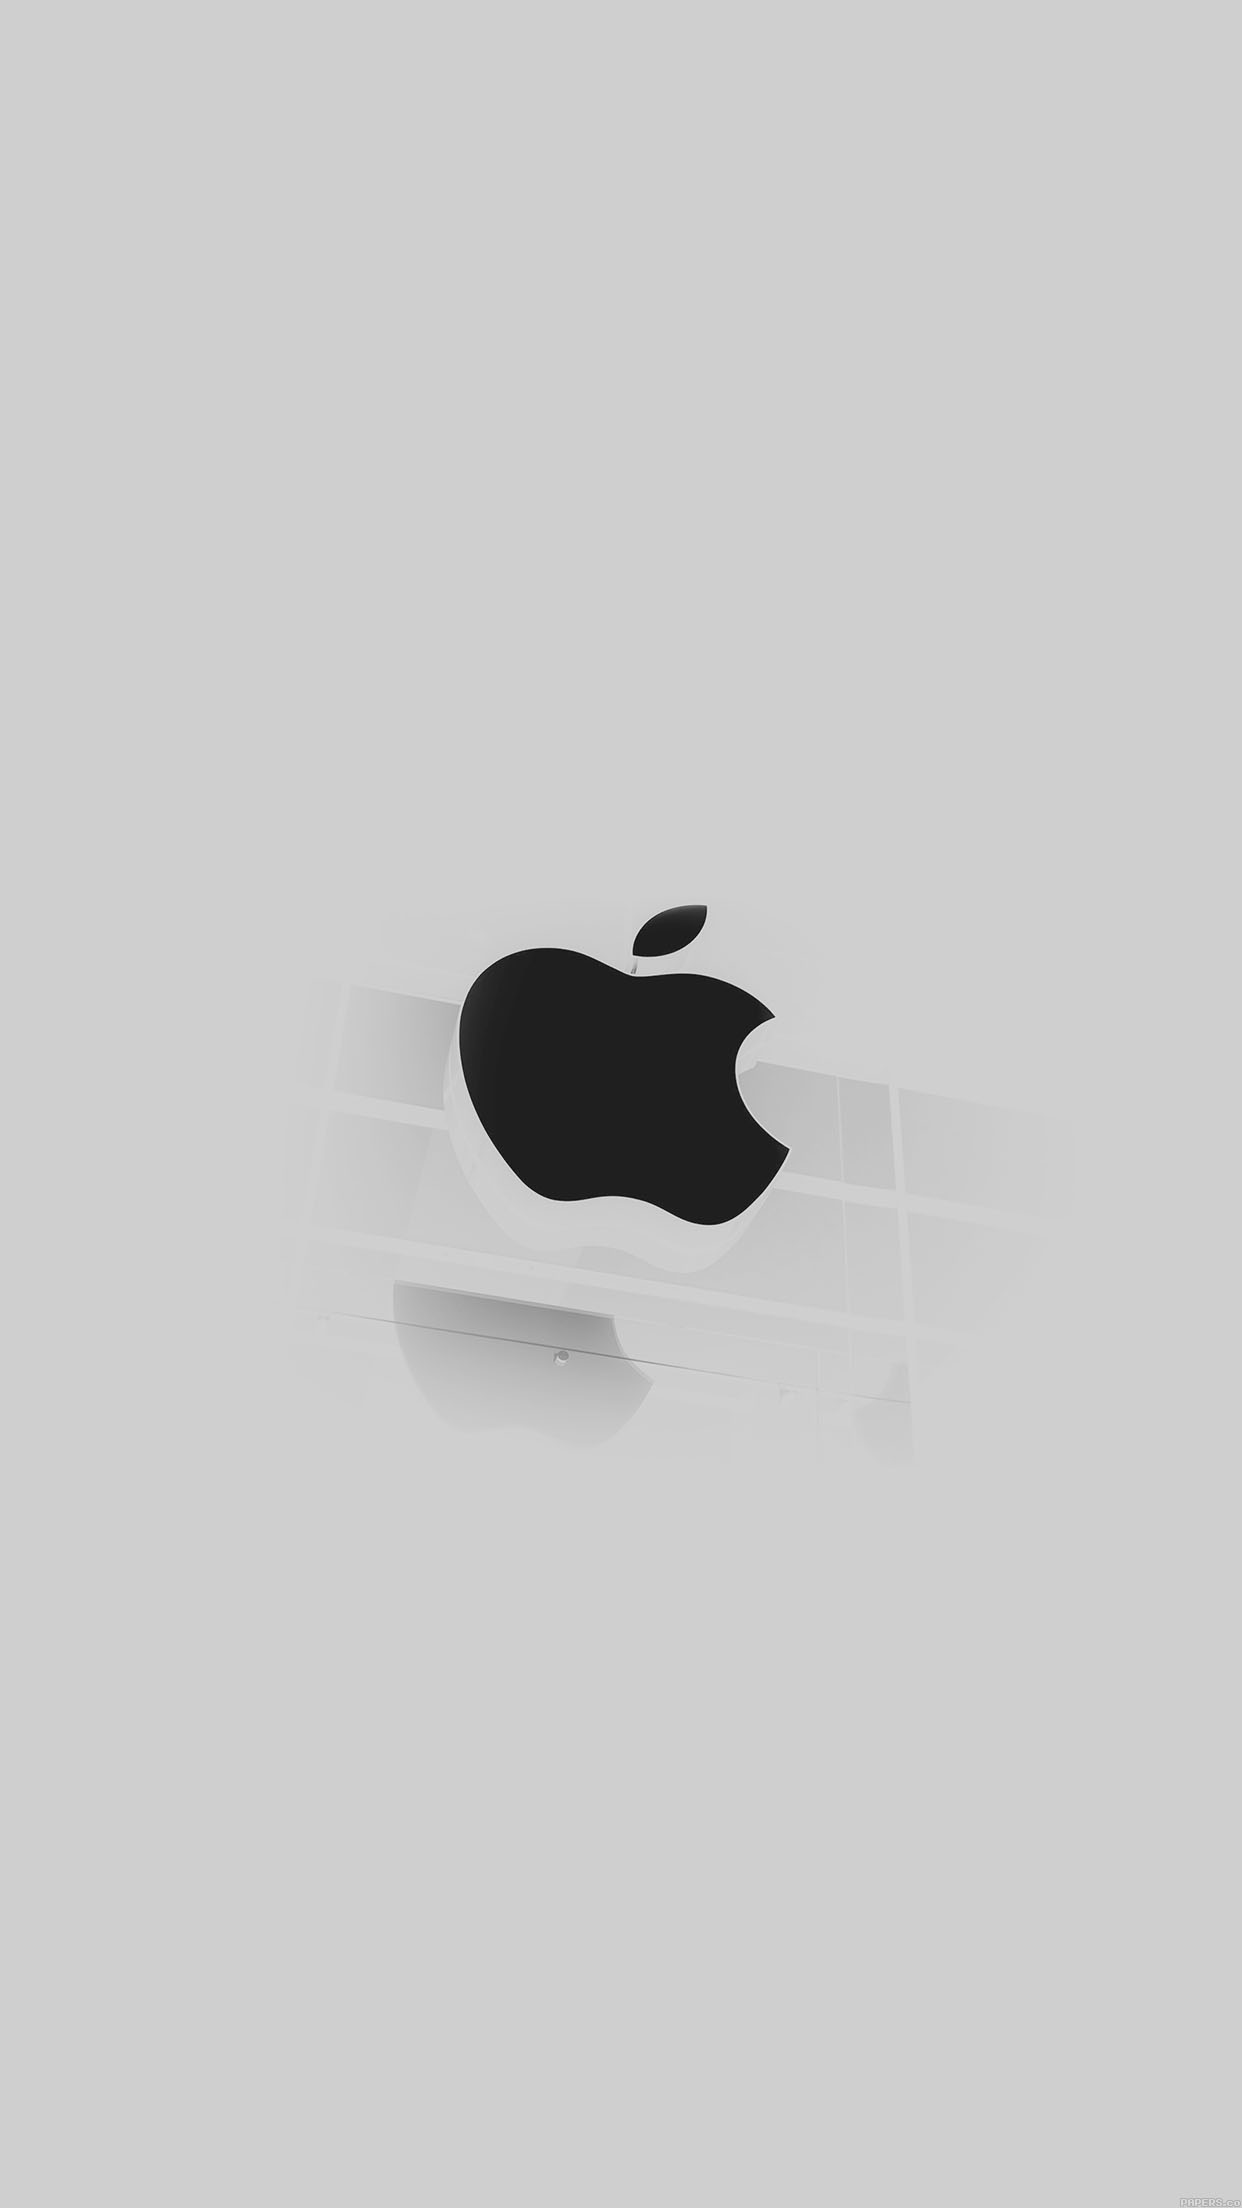 iphone6papers - ac55-wallpaper-apple-logo-glass-white-iphone6-ready